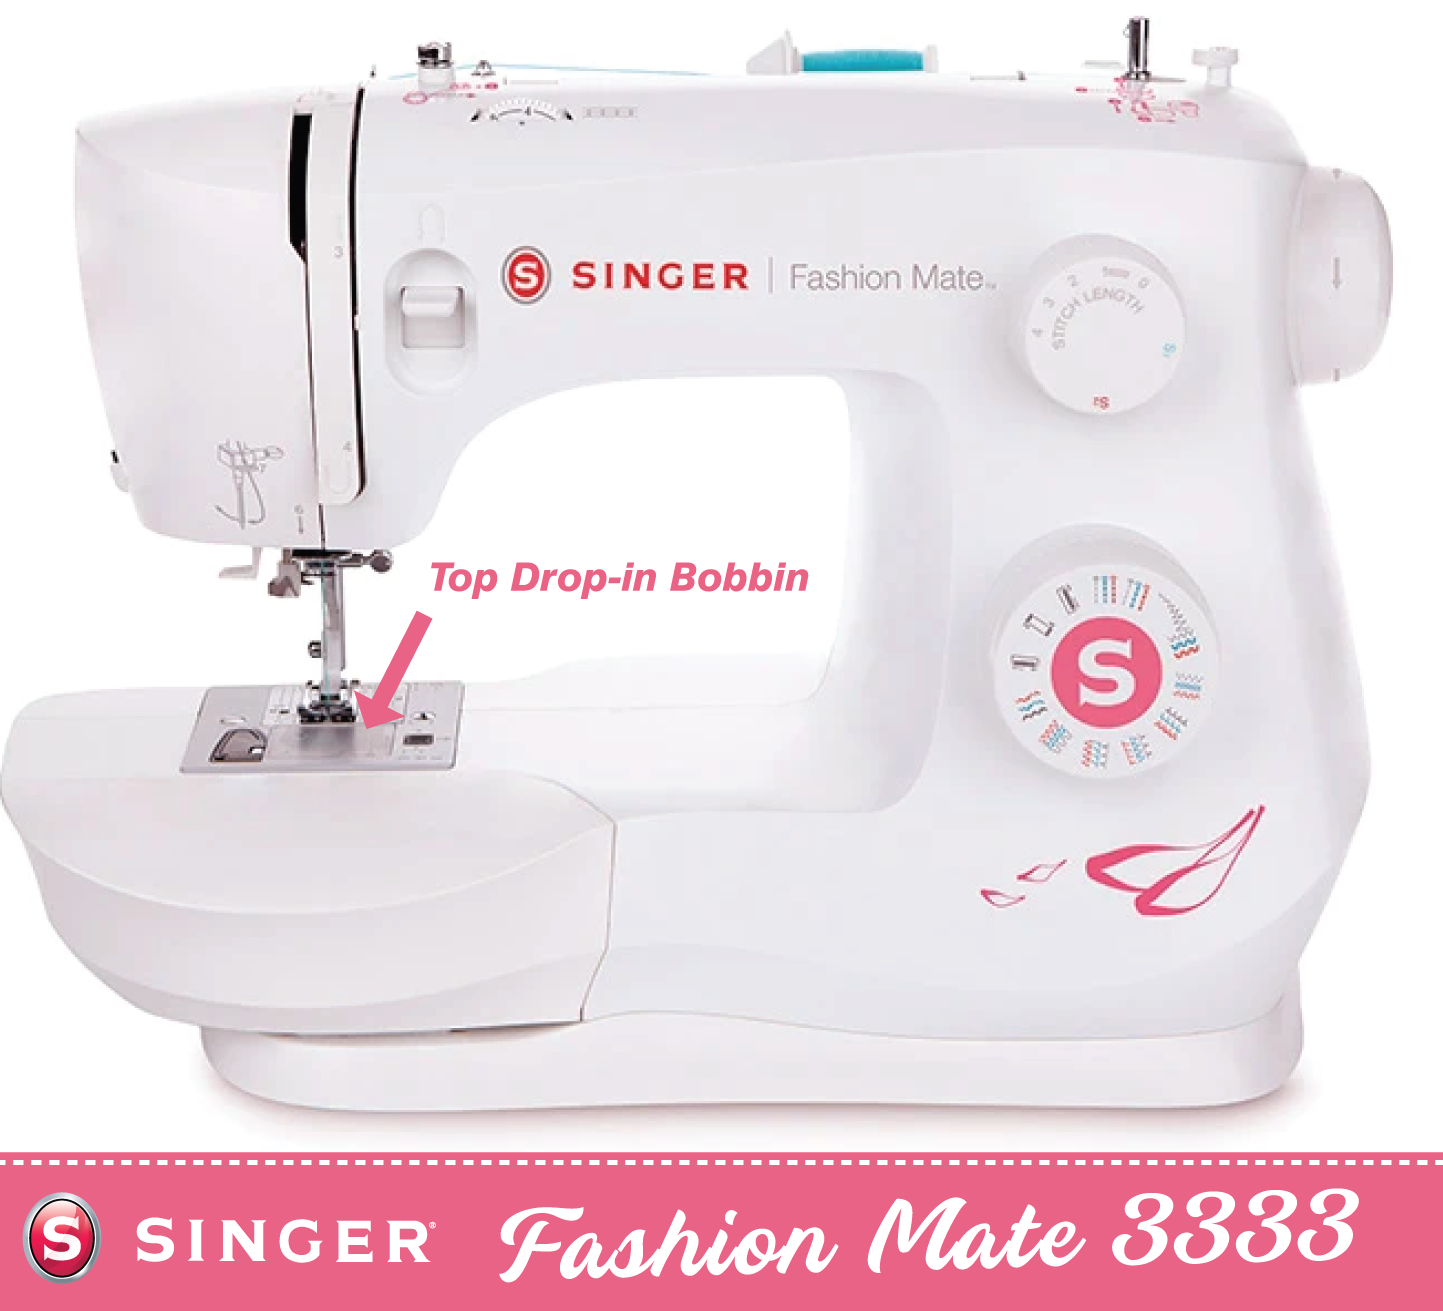 Singer Fashion Mate 3333 * latest 2021 model * with Auto needle threader and Drop and Sew bobbin - Strong metal frame. Preorder for November delivery